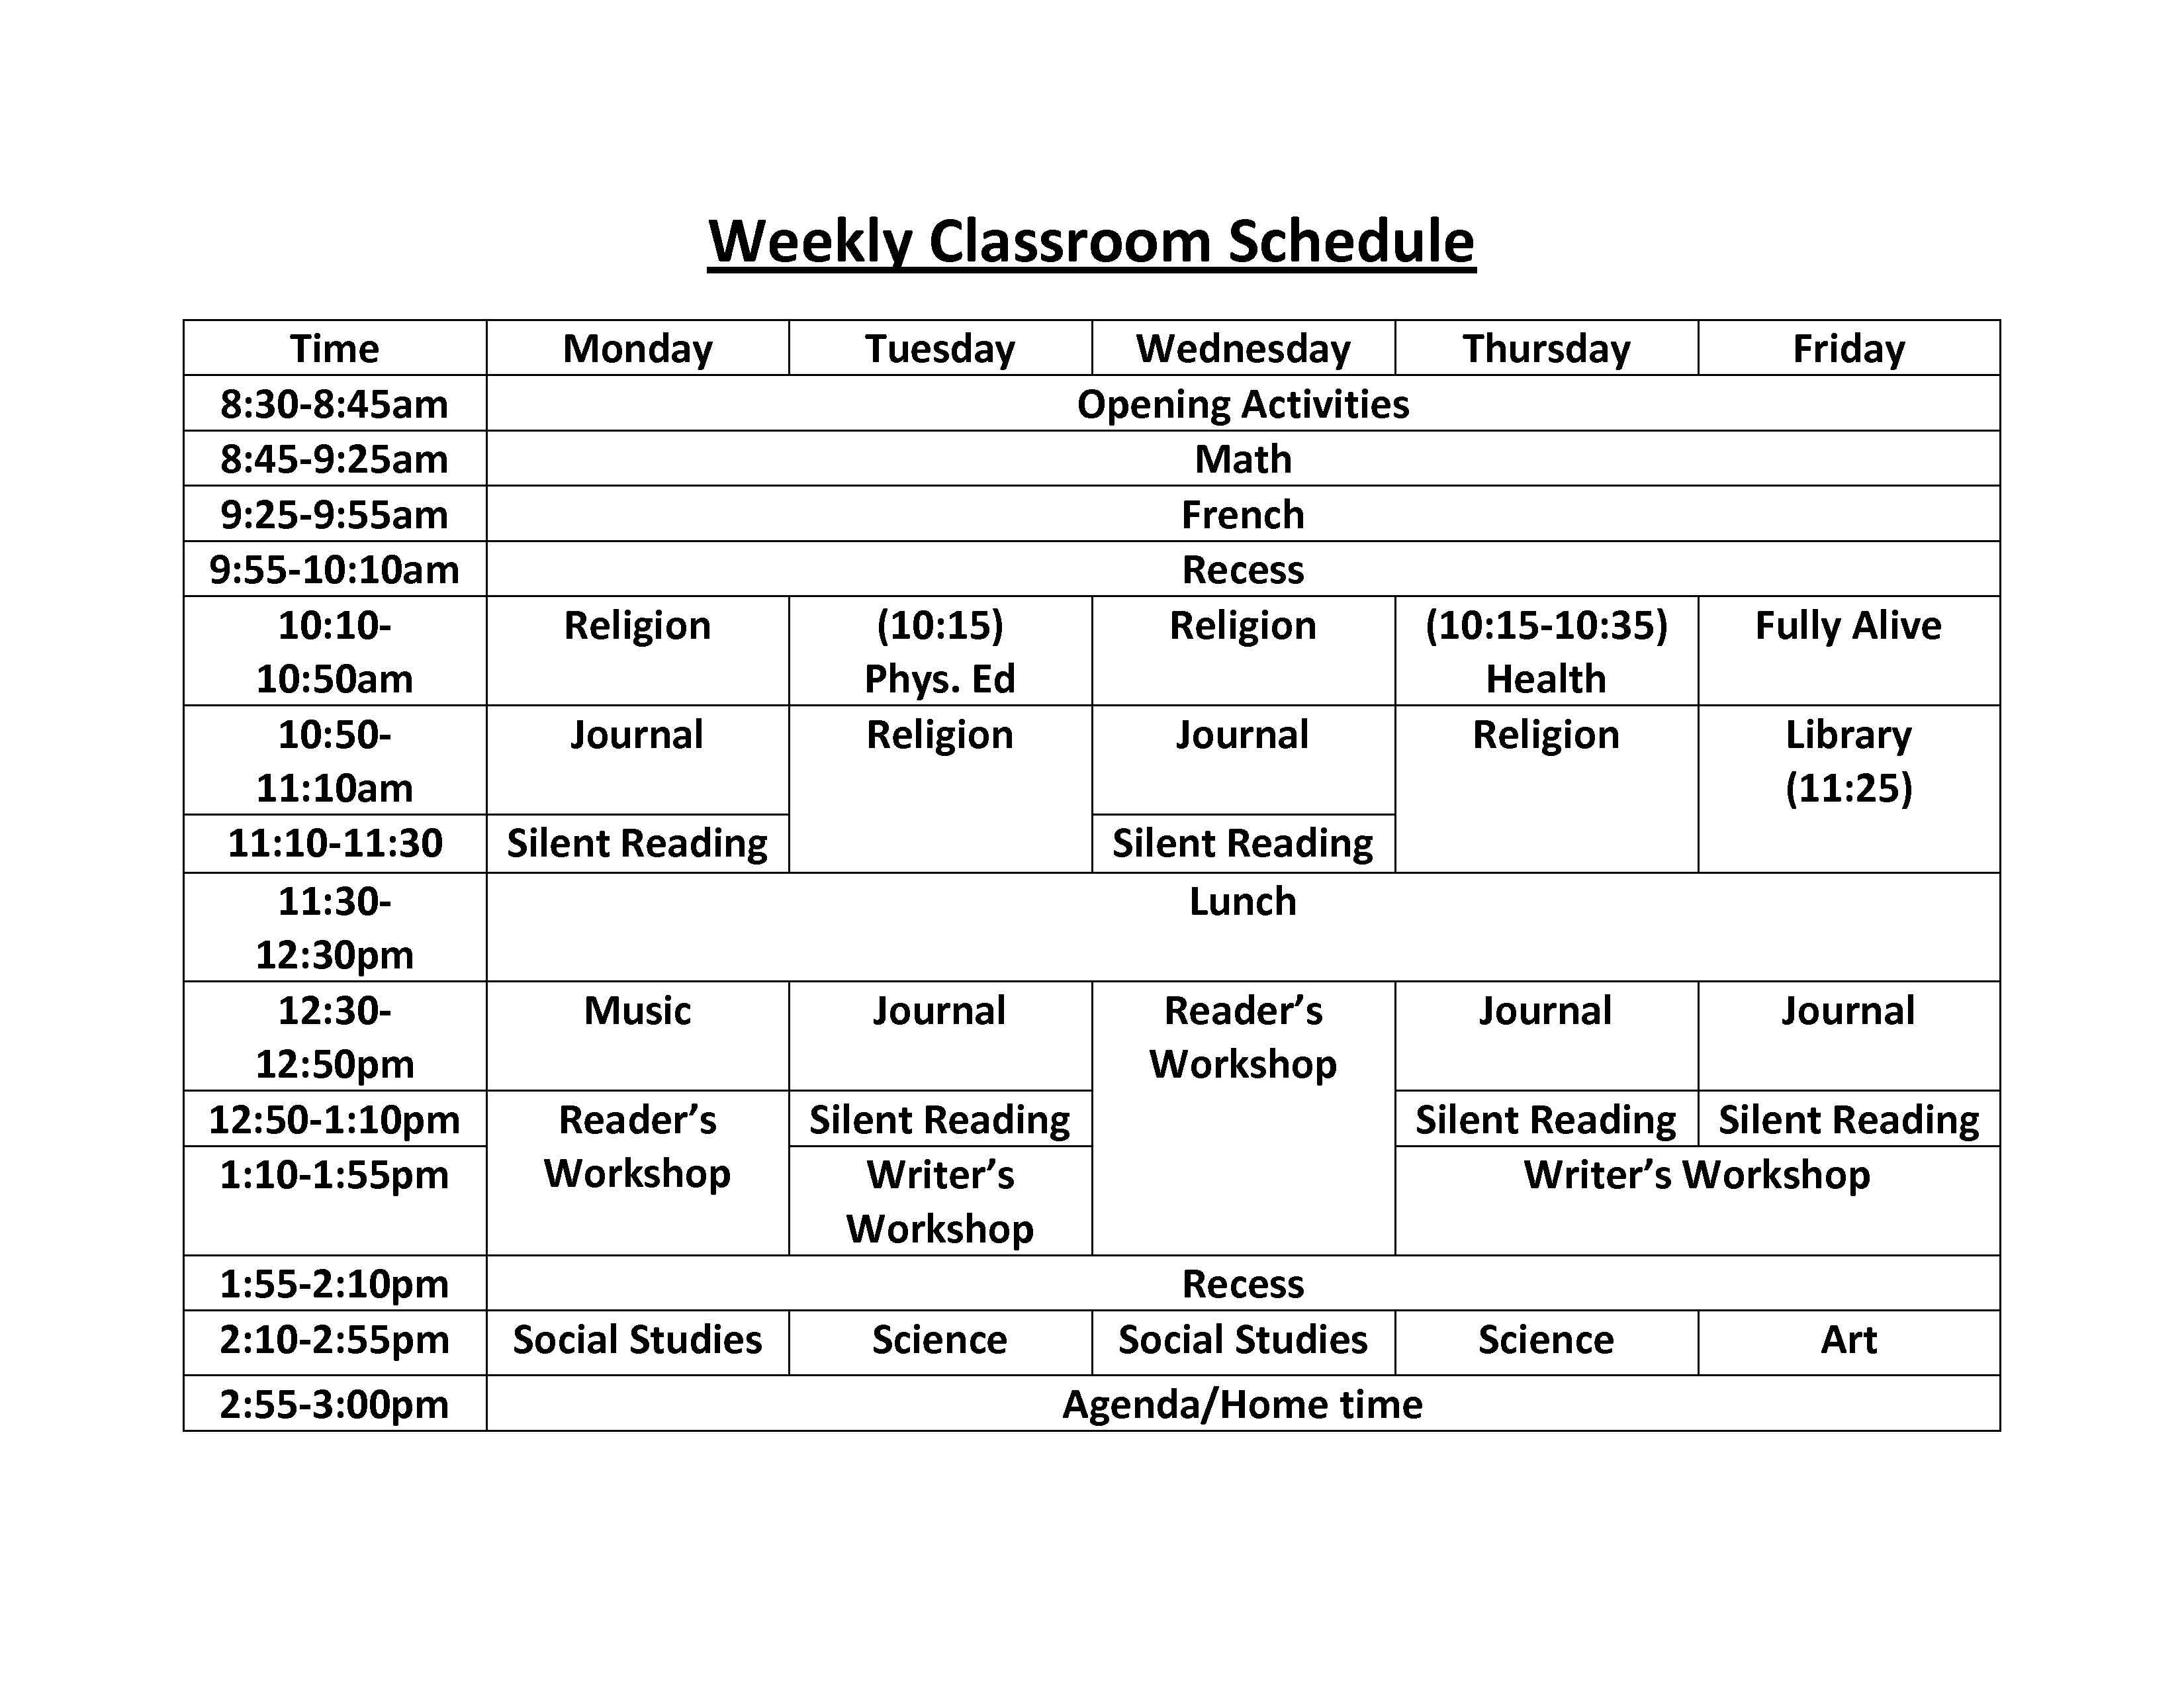 Weekly Classroom Schedule With Elementary School Subjects